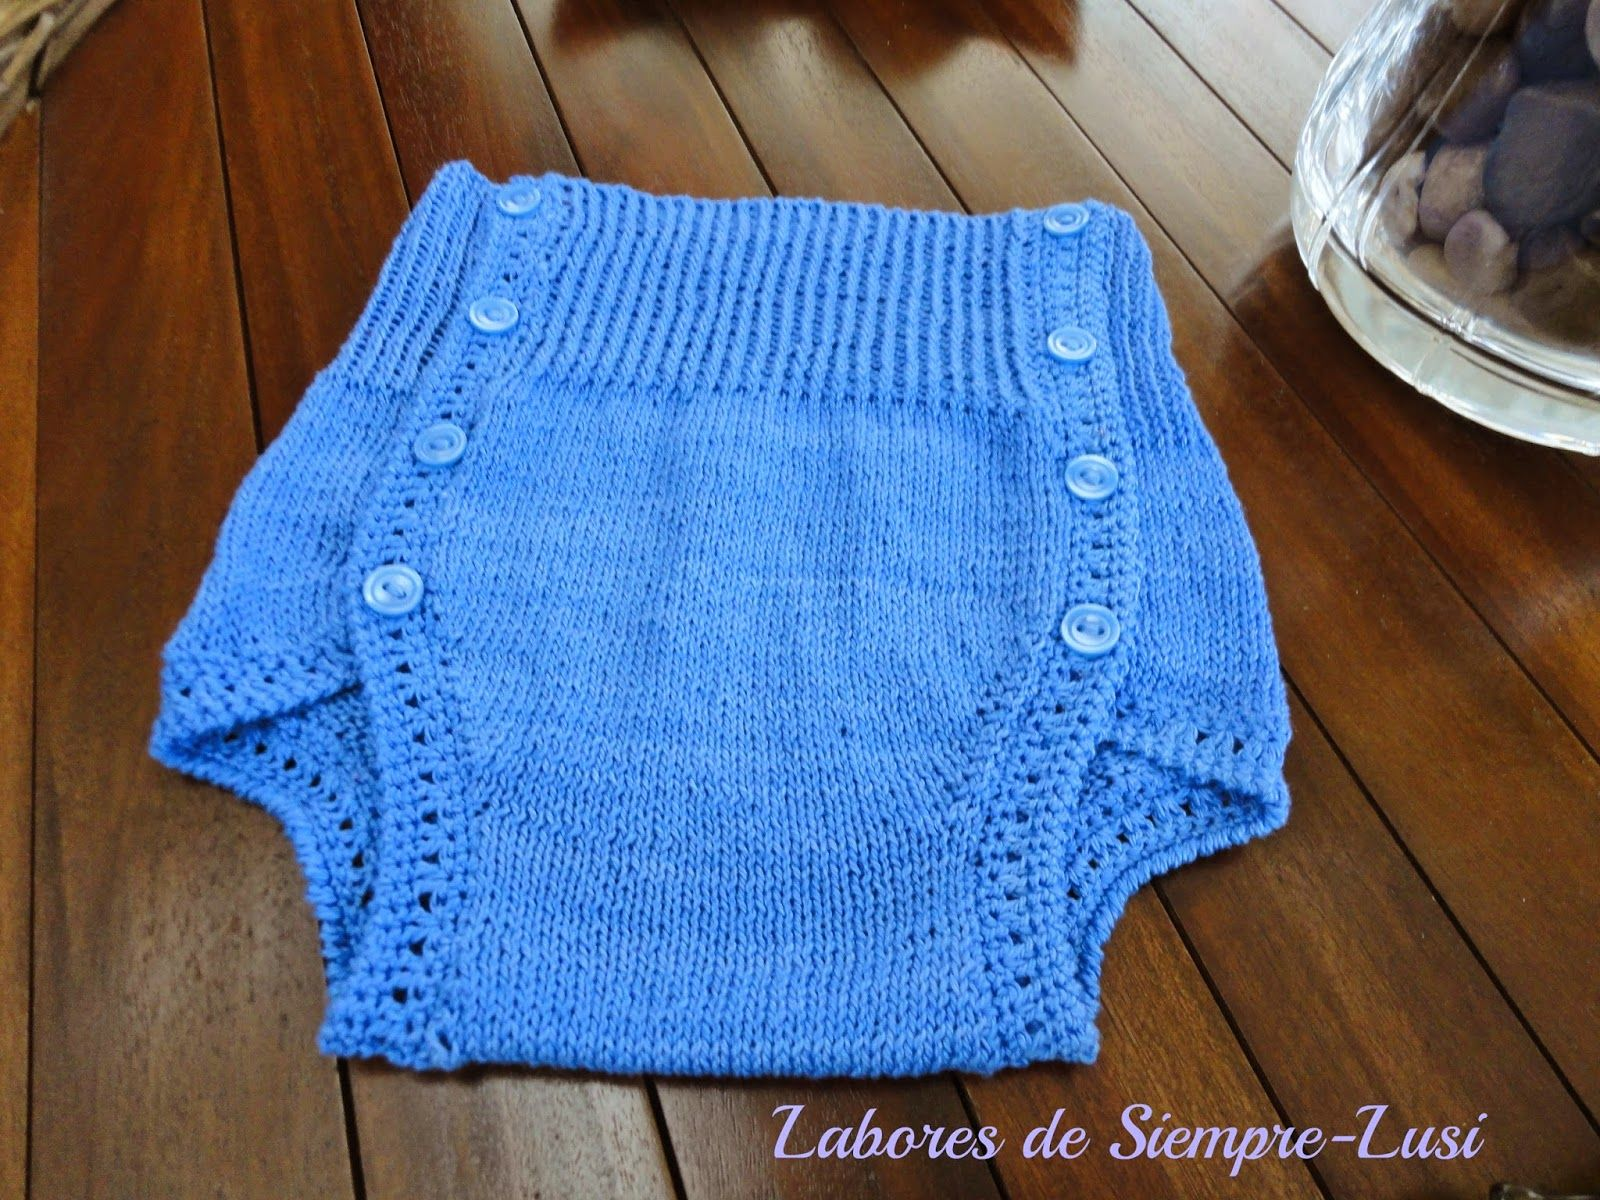 Knit diaper cover full instructions in spanish labores de knit diaper cover full instructions in spanish labores de siempre by lusi bankloansurffo Images